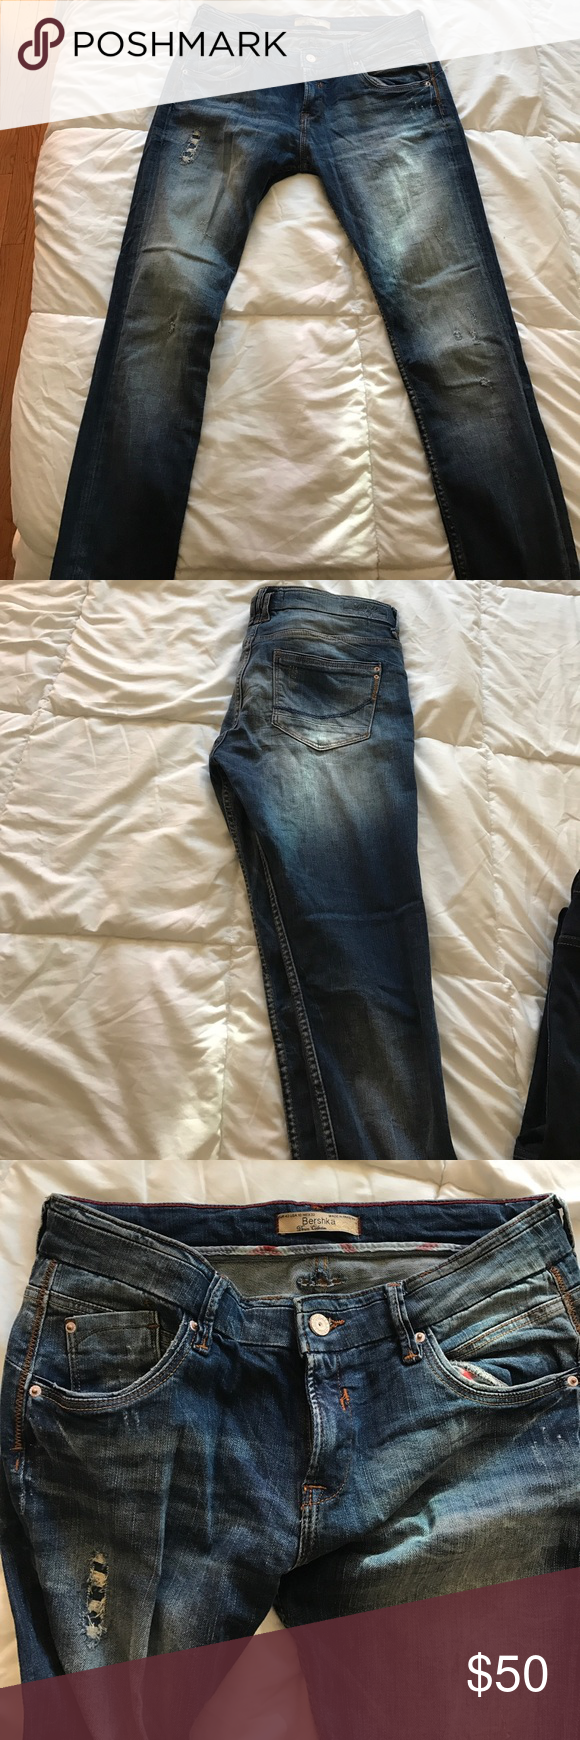 Skinny jeans 10 euro